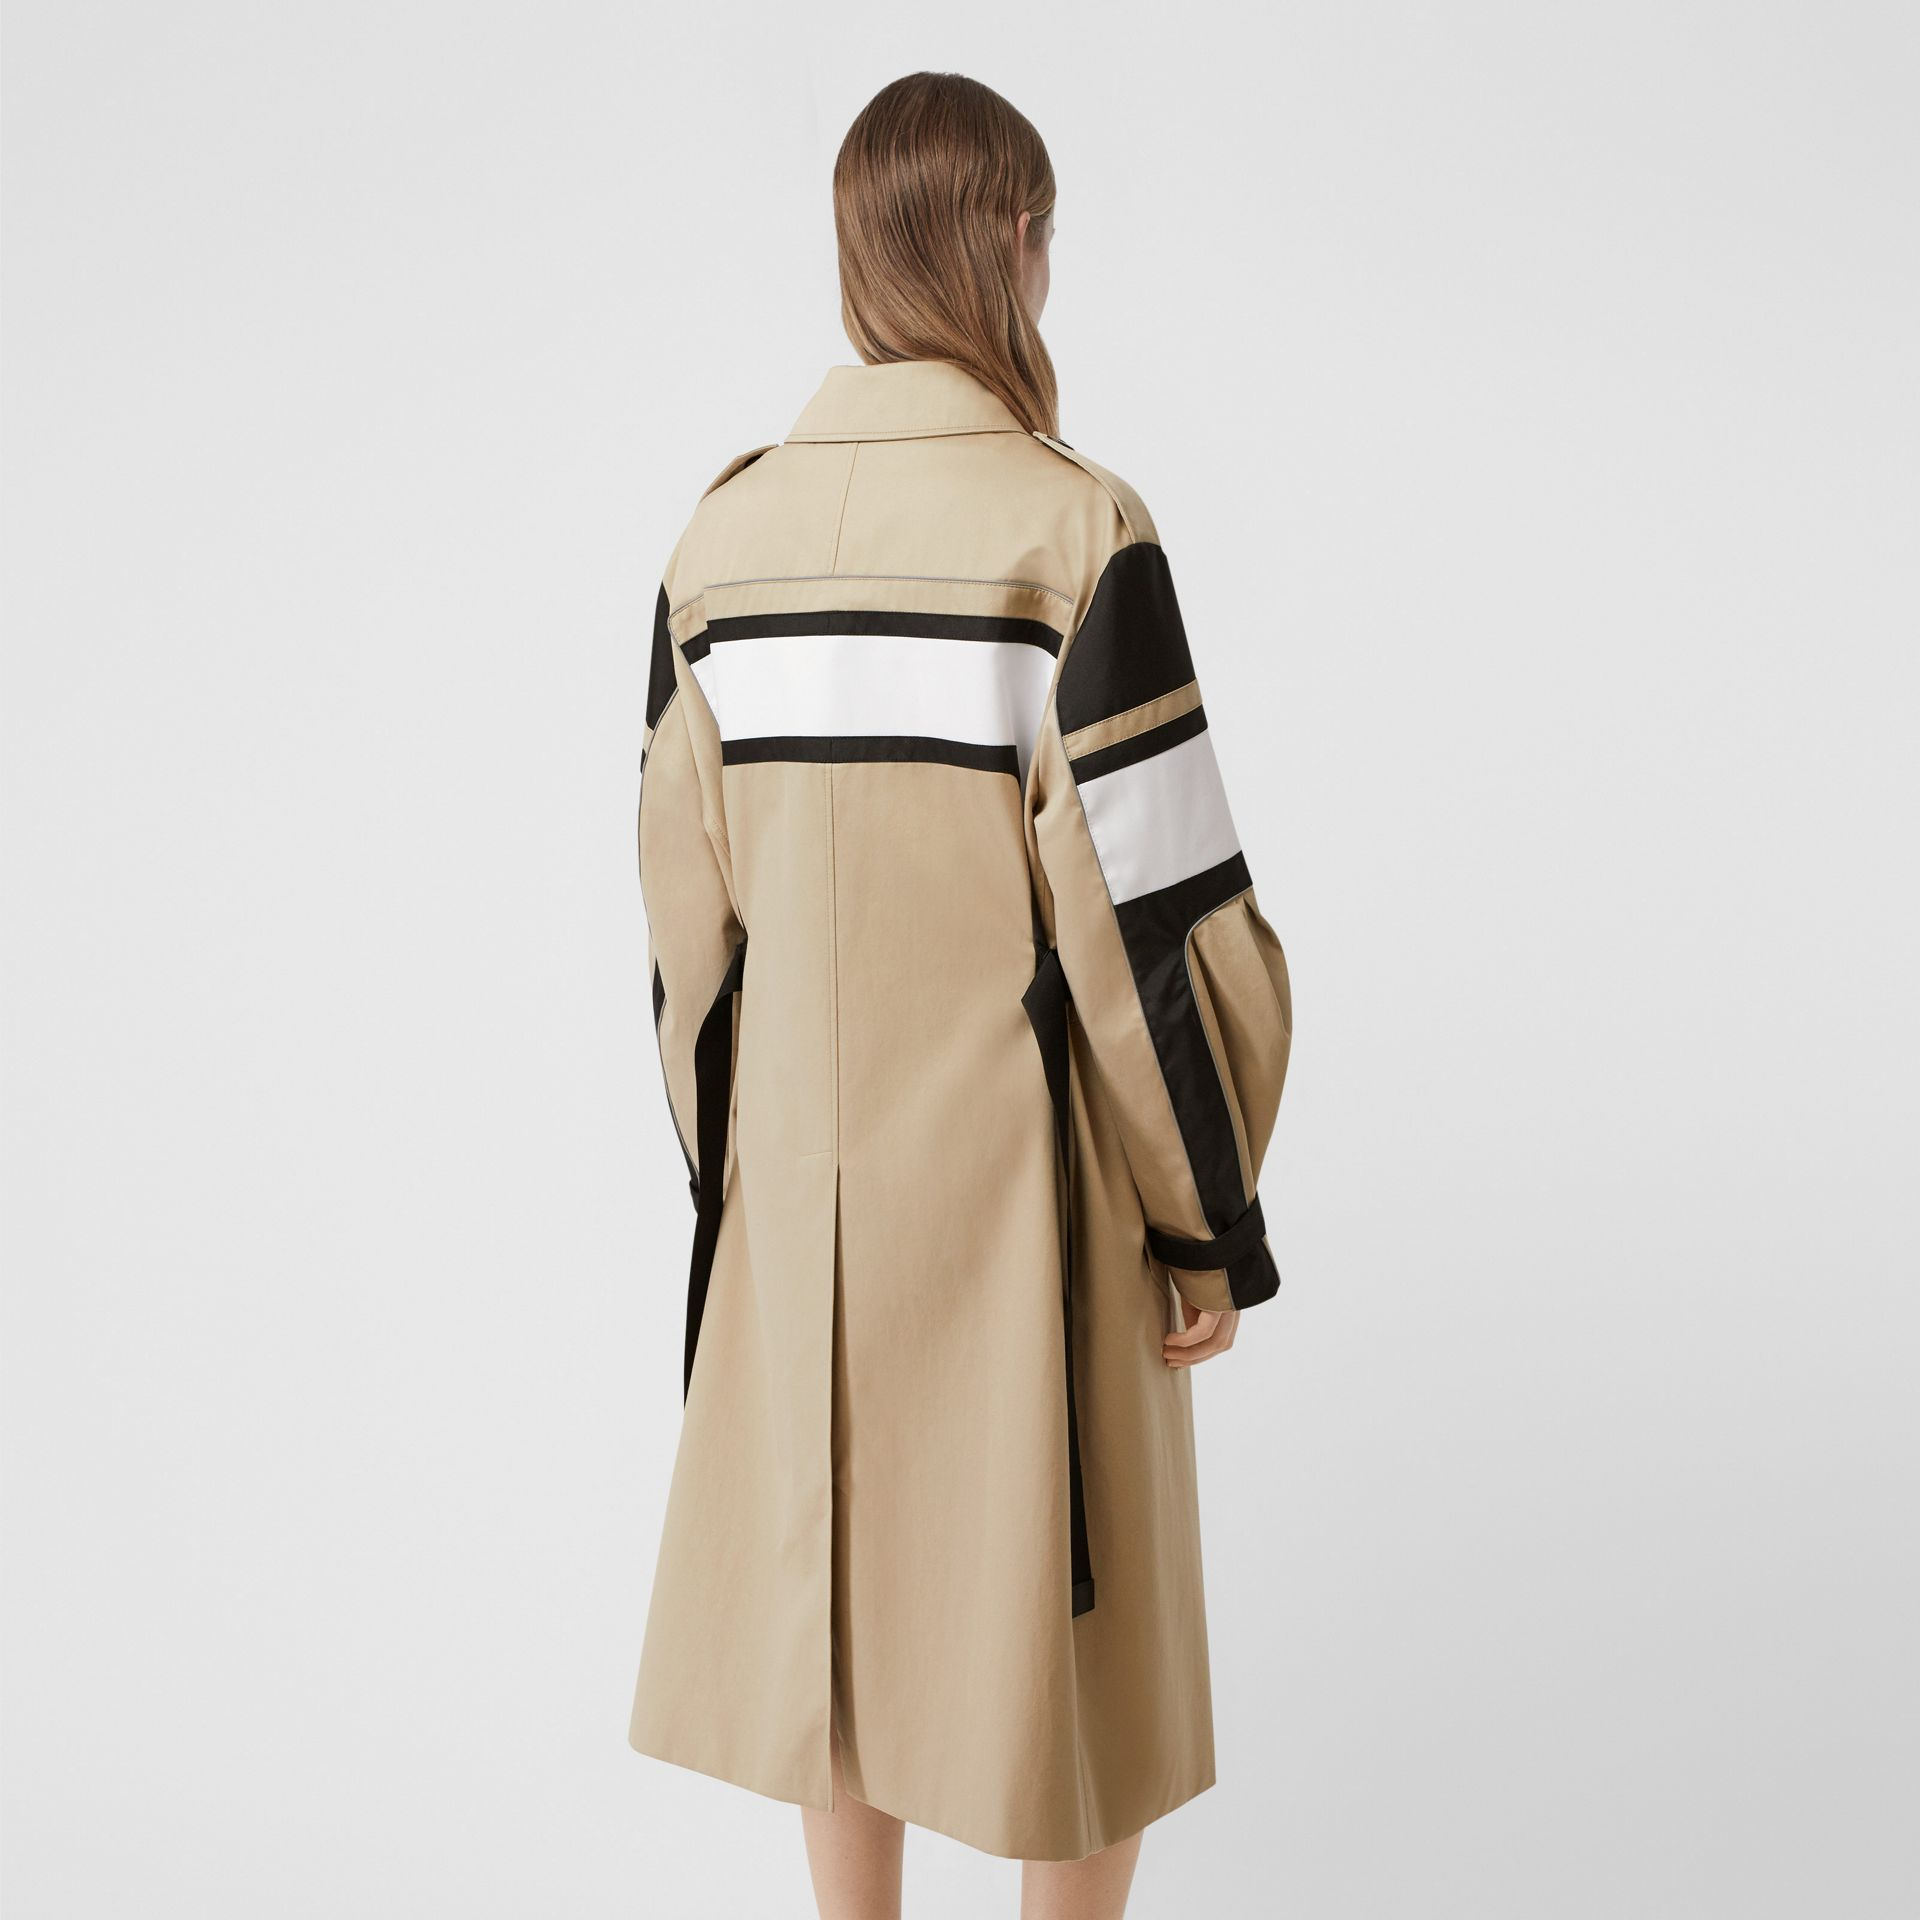 Cotton Gabardine Reconstructed Trench Coat in Soft Fawn - Women | Burberry - gallery image 2